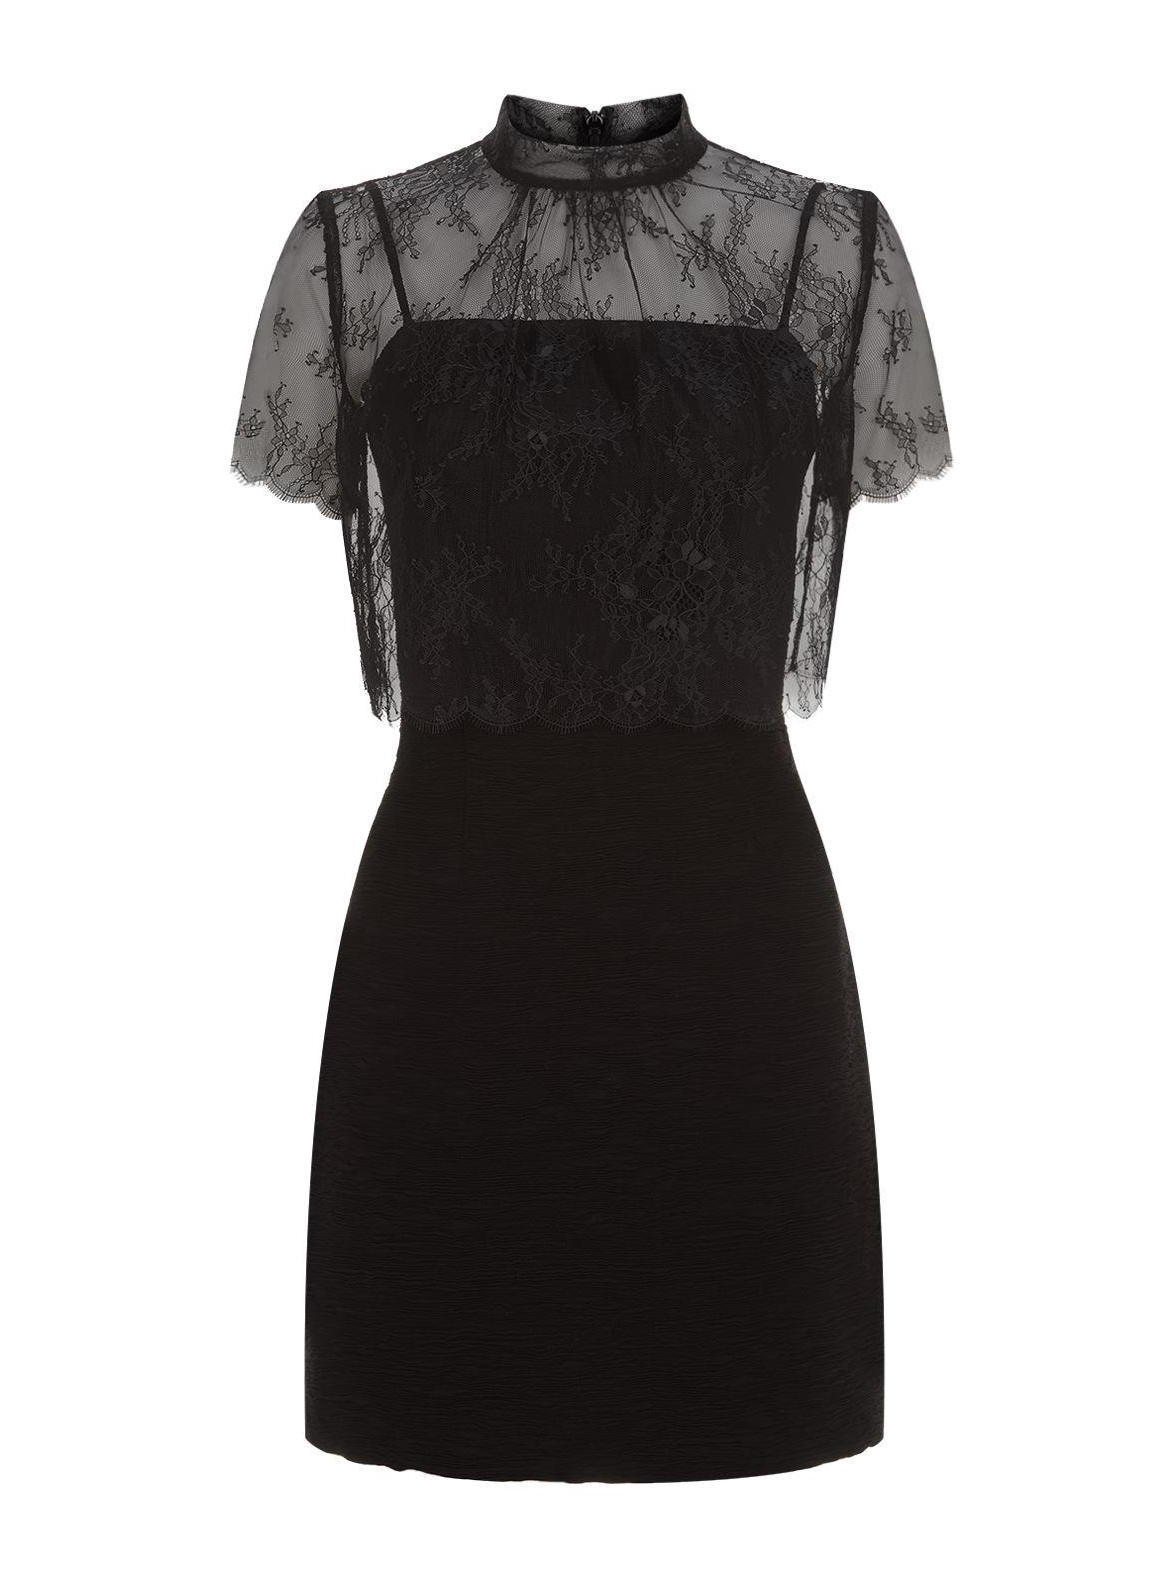 Sandro Doma Lace Dress.jpg